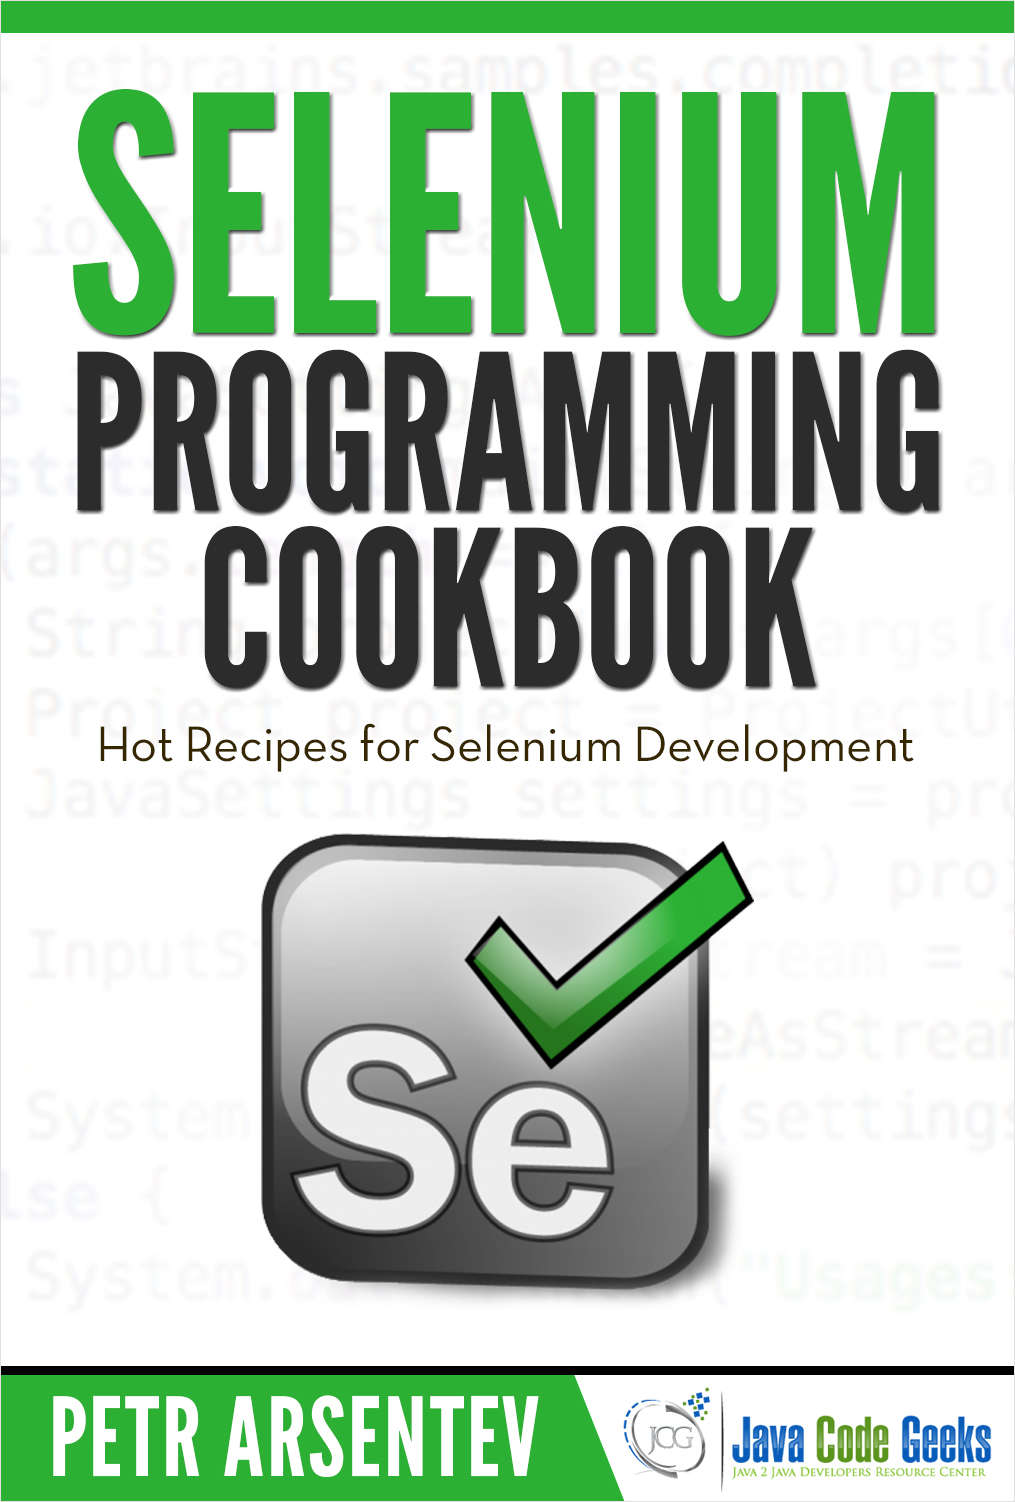 Selenium Programming Cookbook